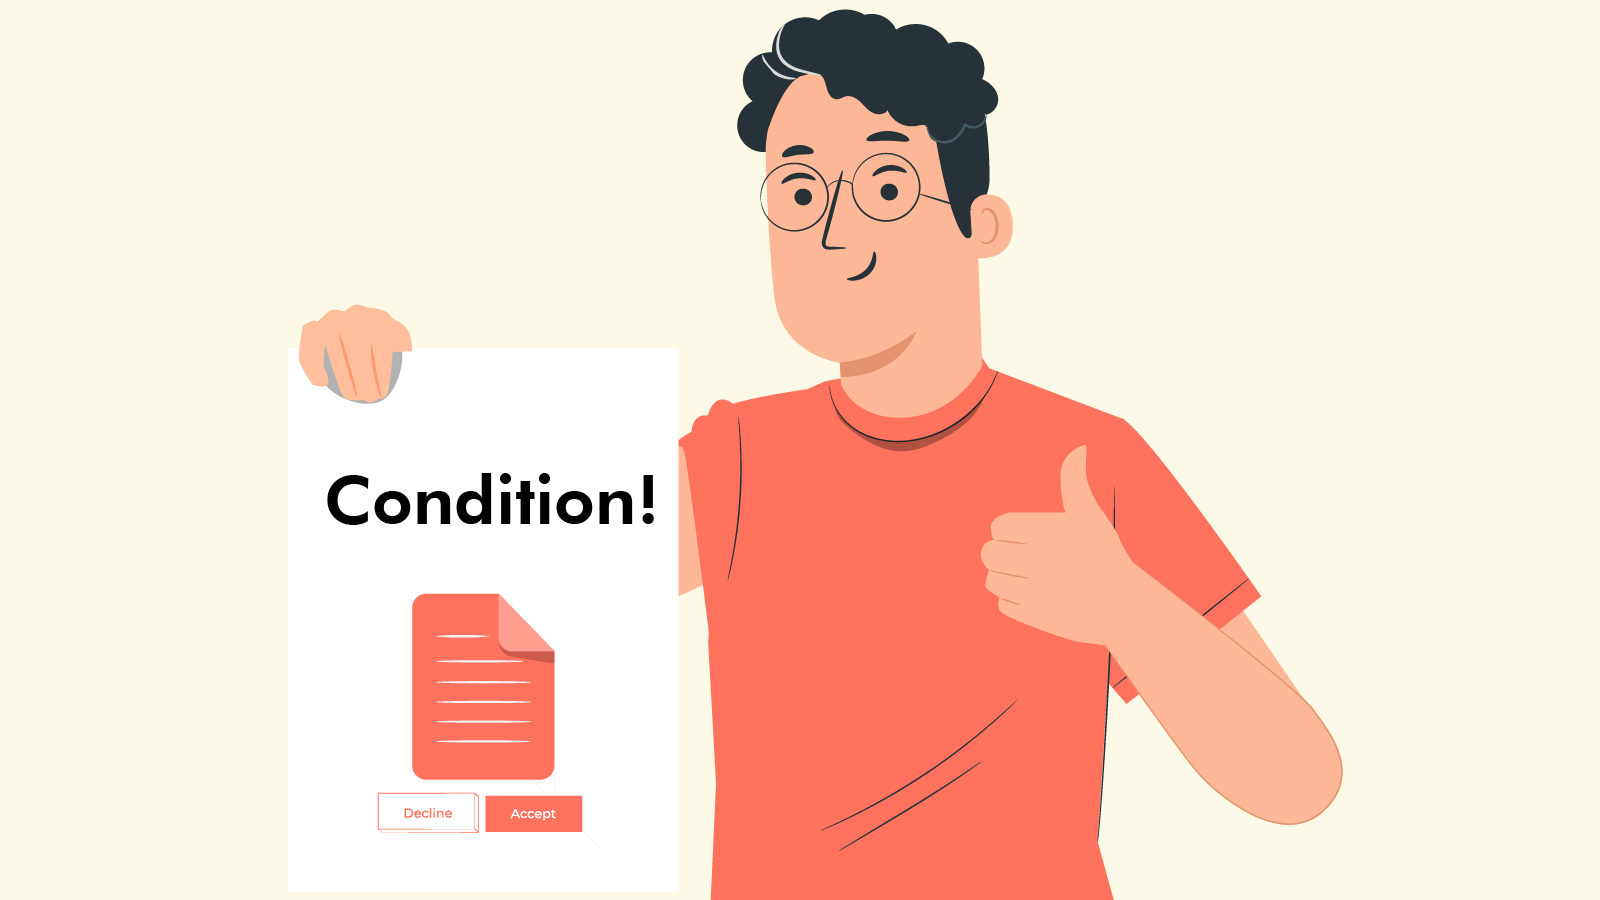 Read the Terms and Conditions